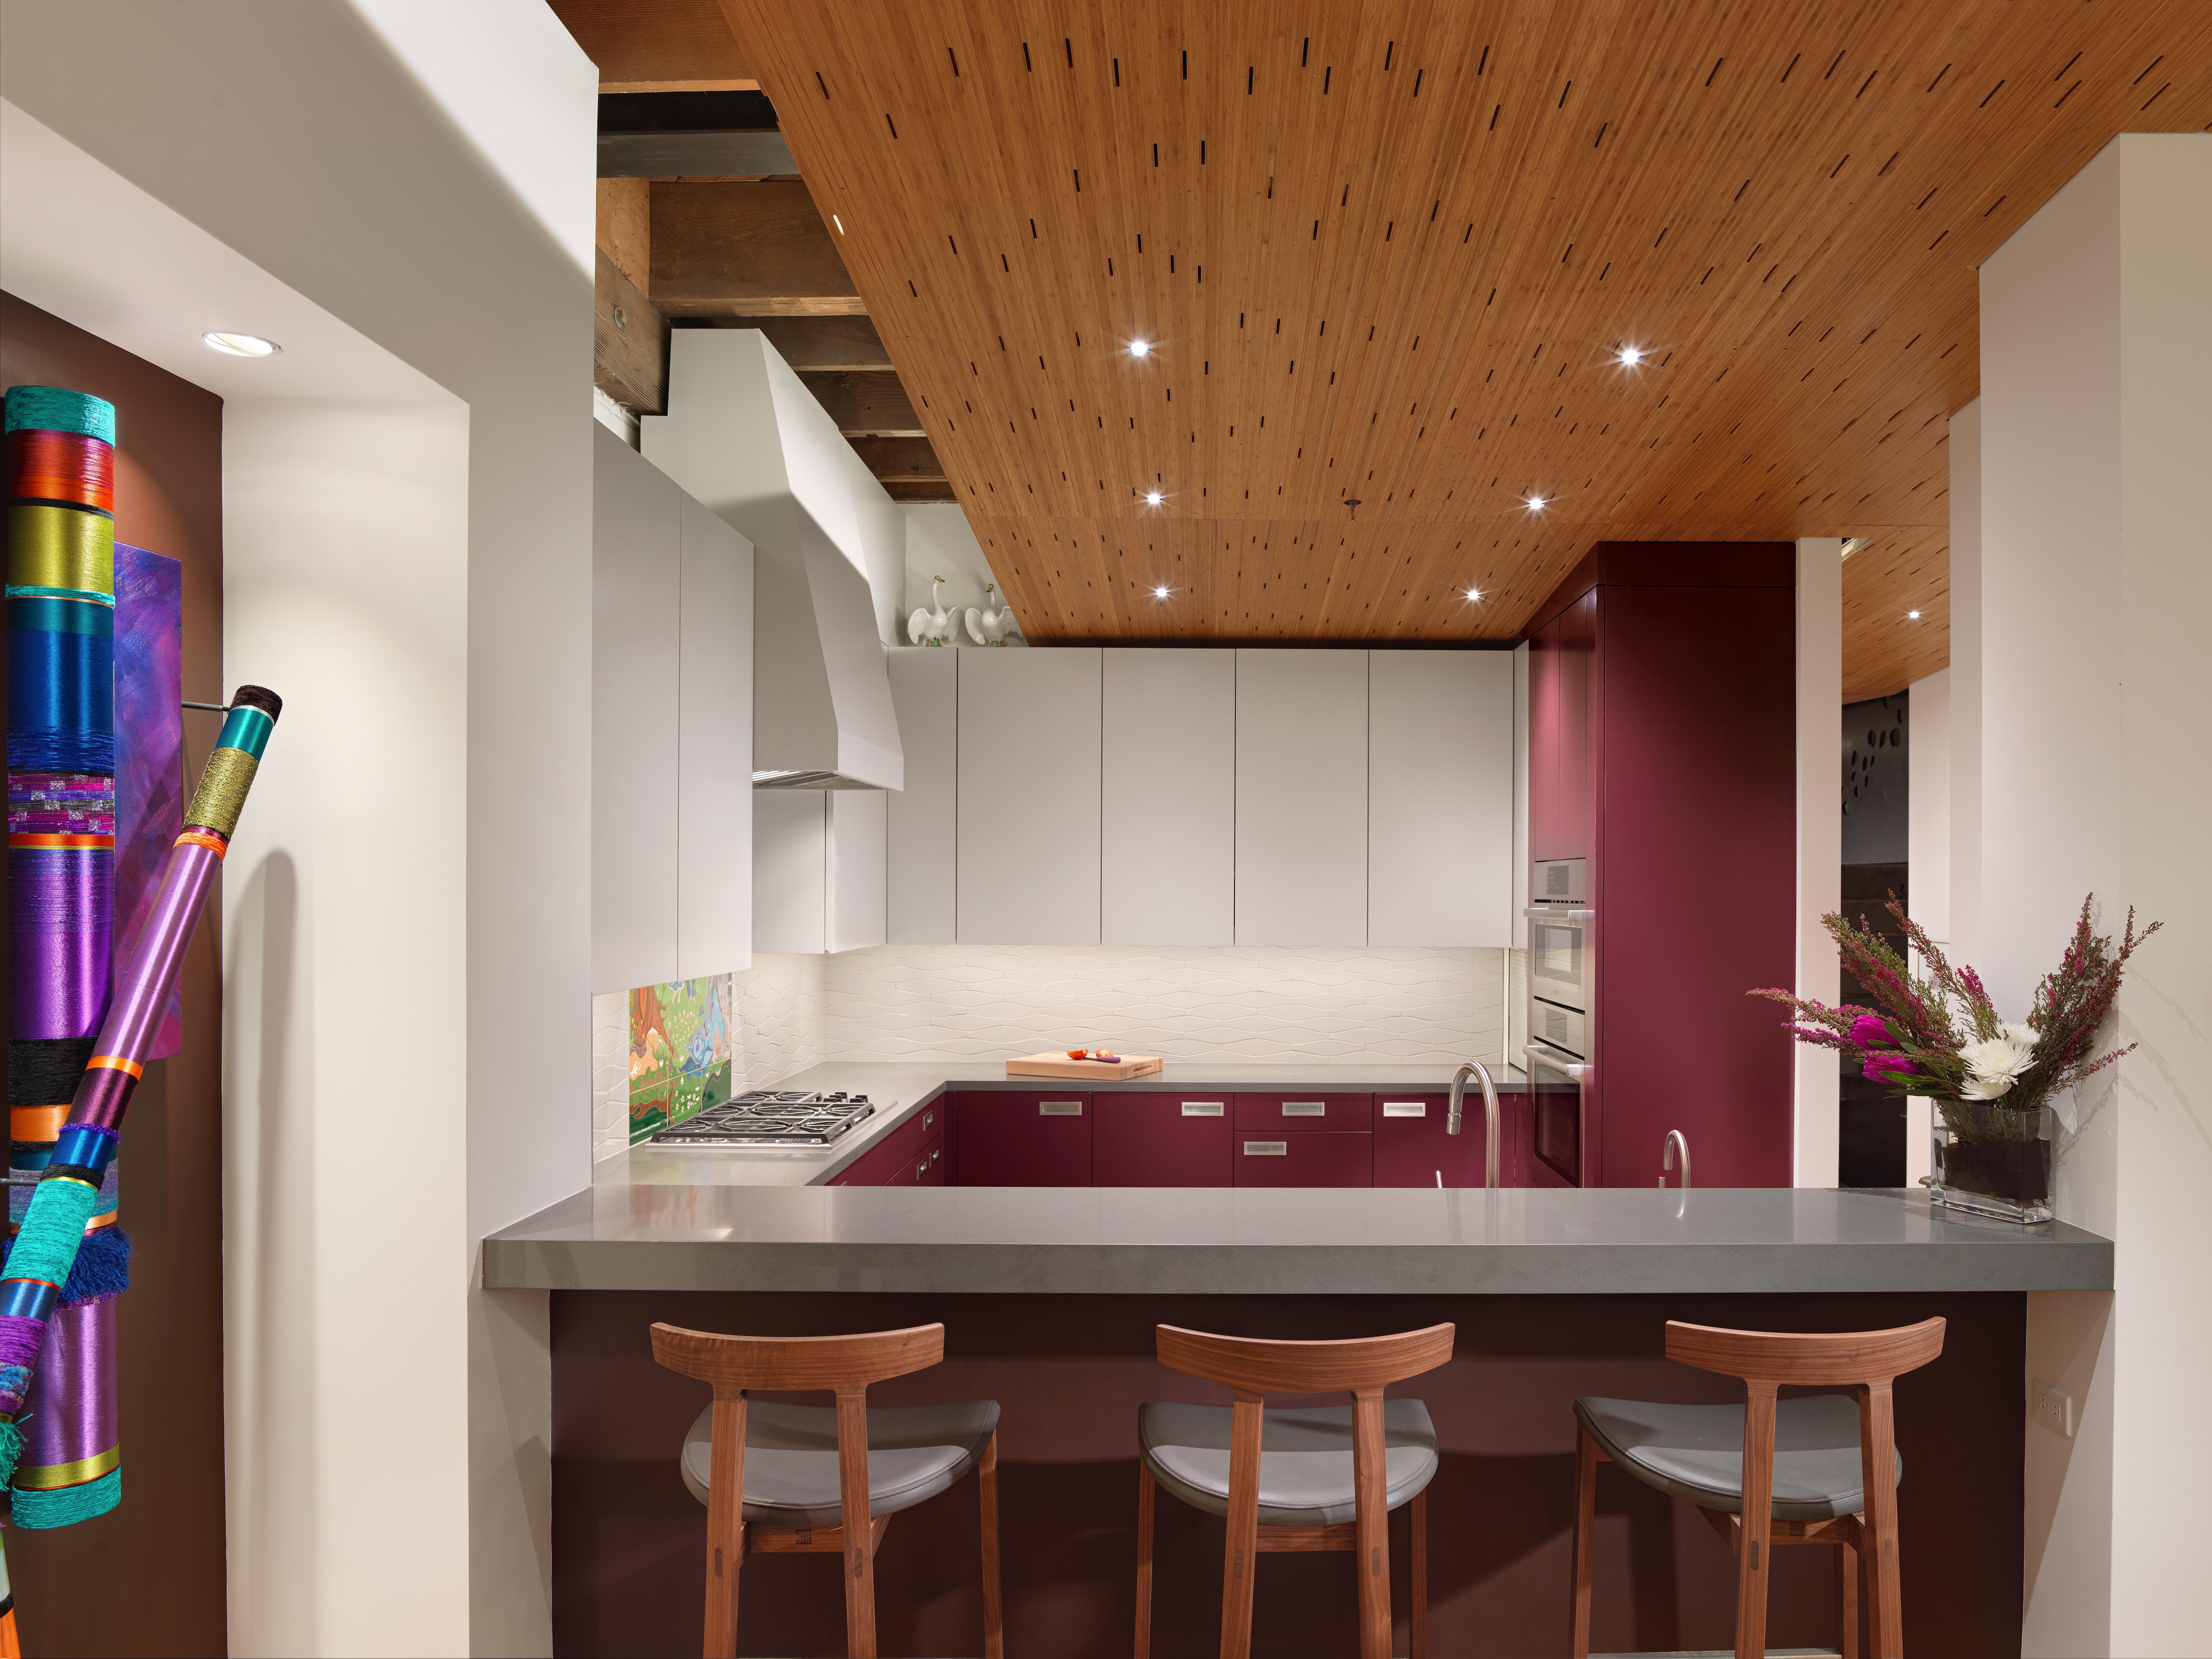 Smith Amp Fong Introduces Plyboo Ceilings Plyboo